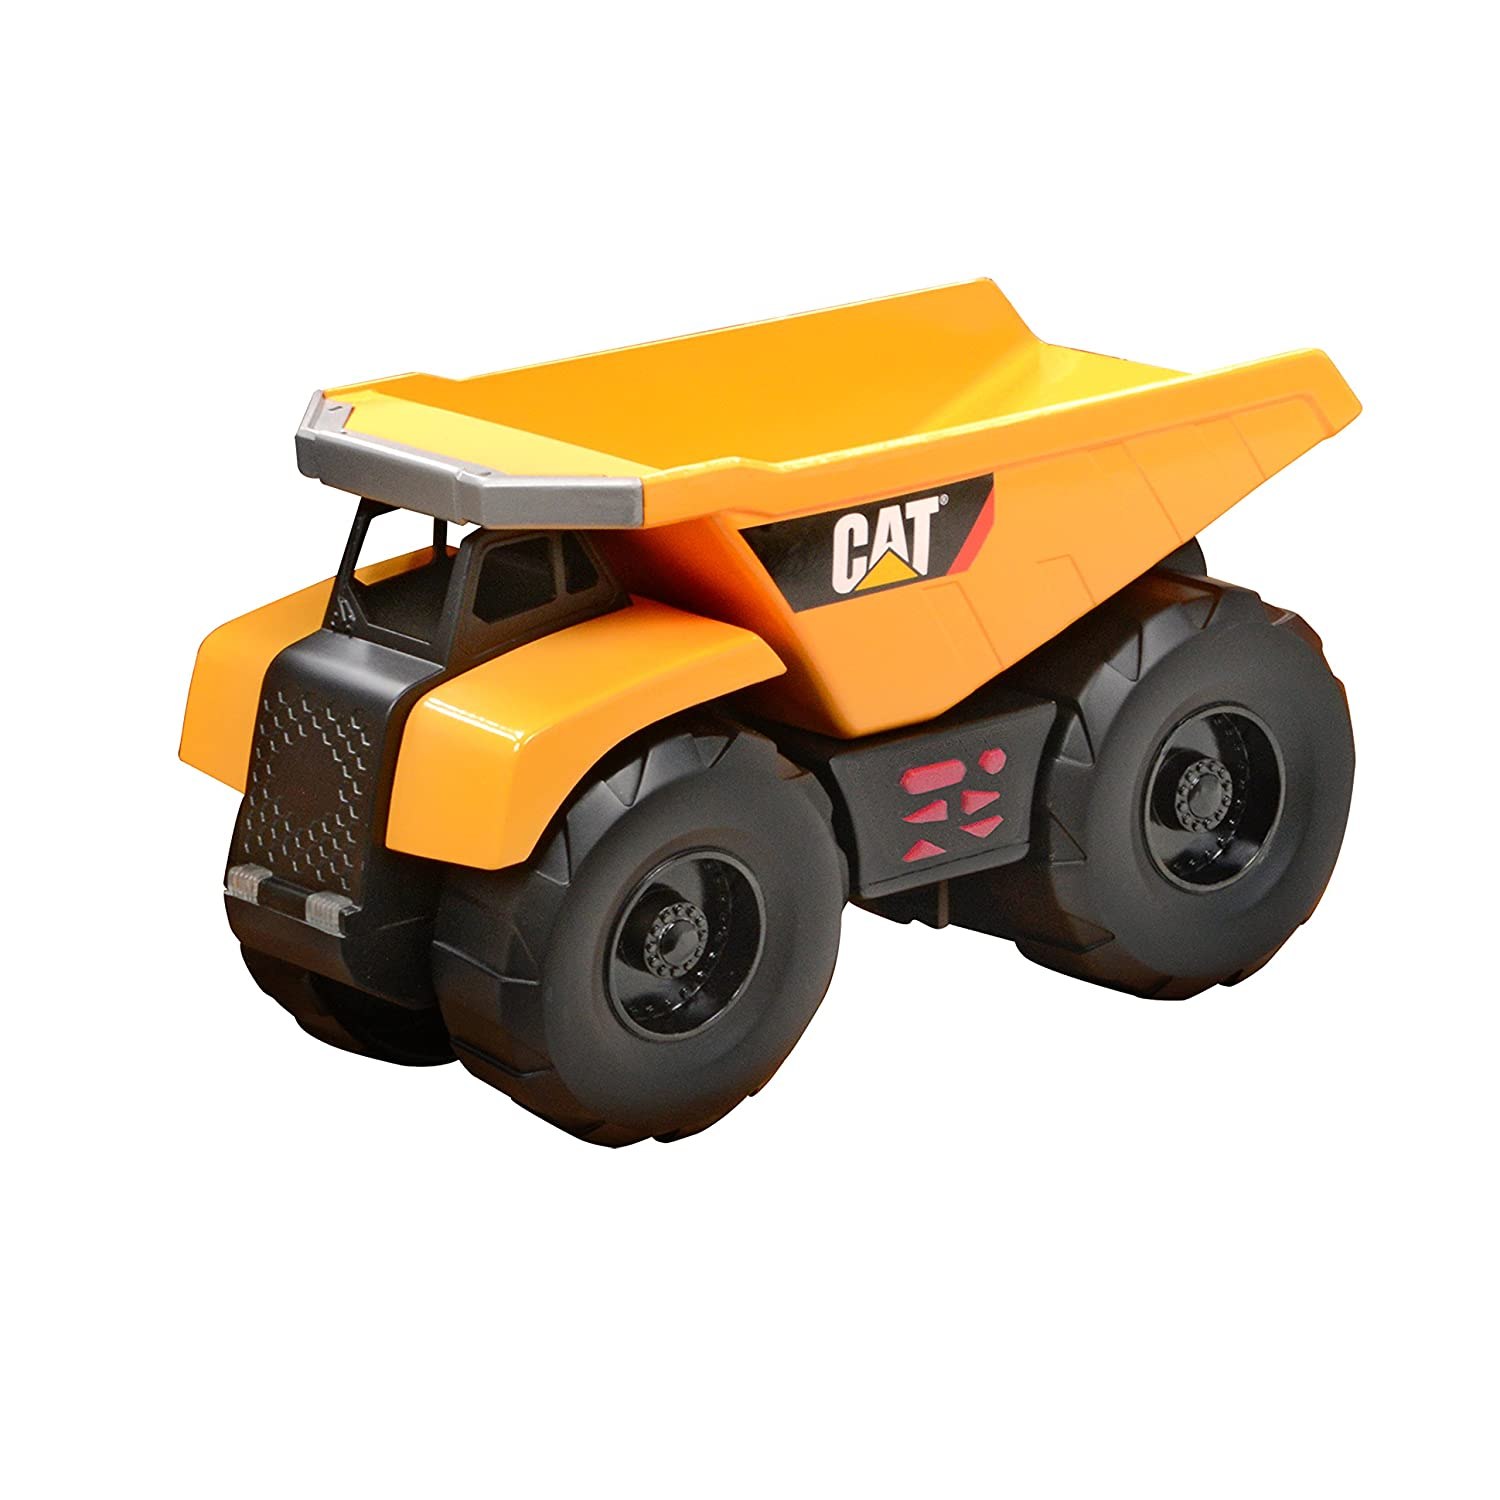 Cat Backhoe Toy Toy State Cat Big Builder Bull